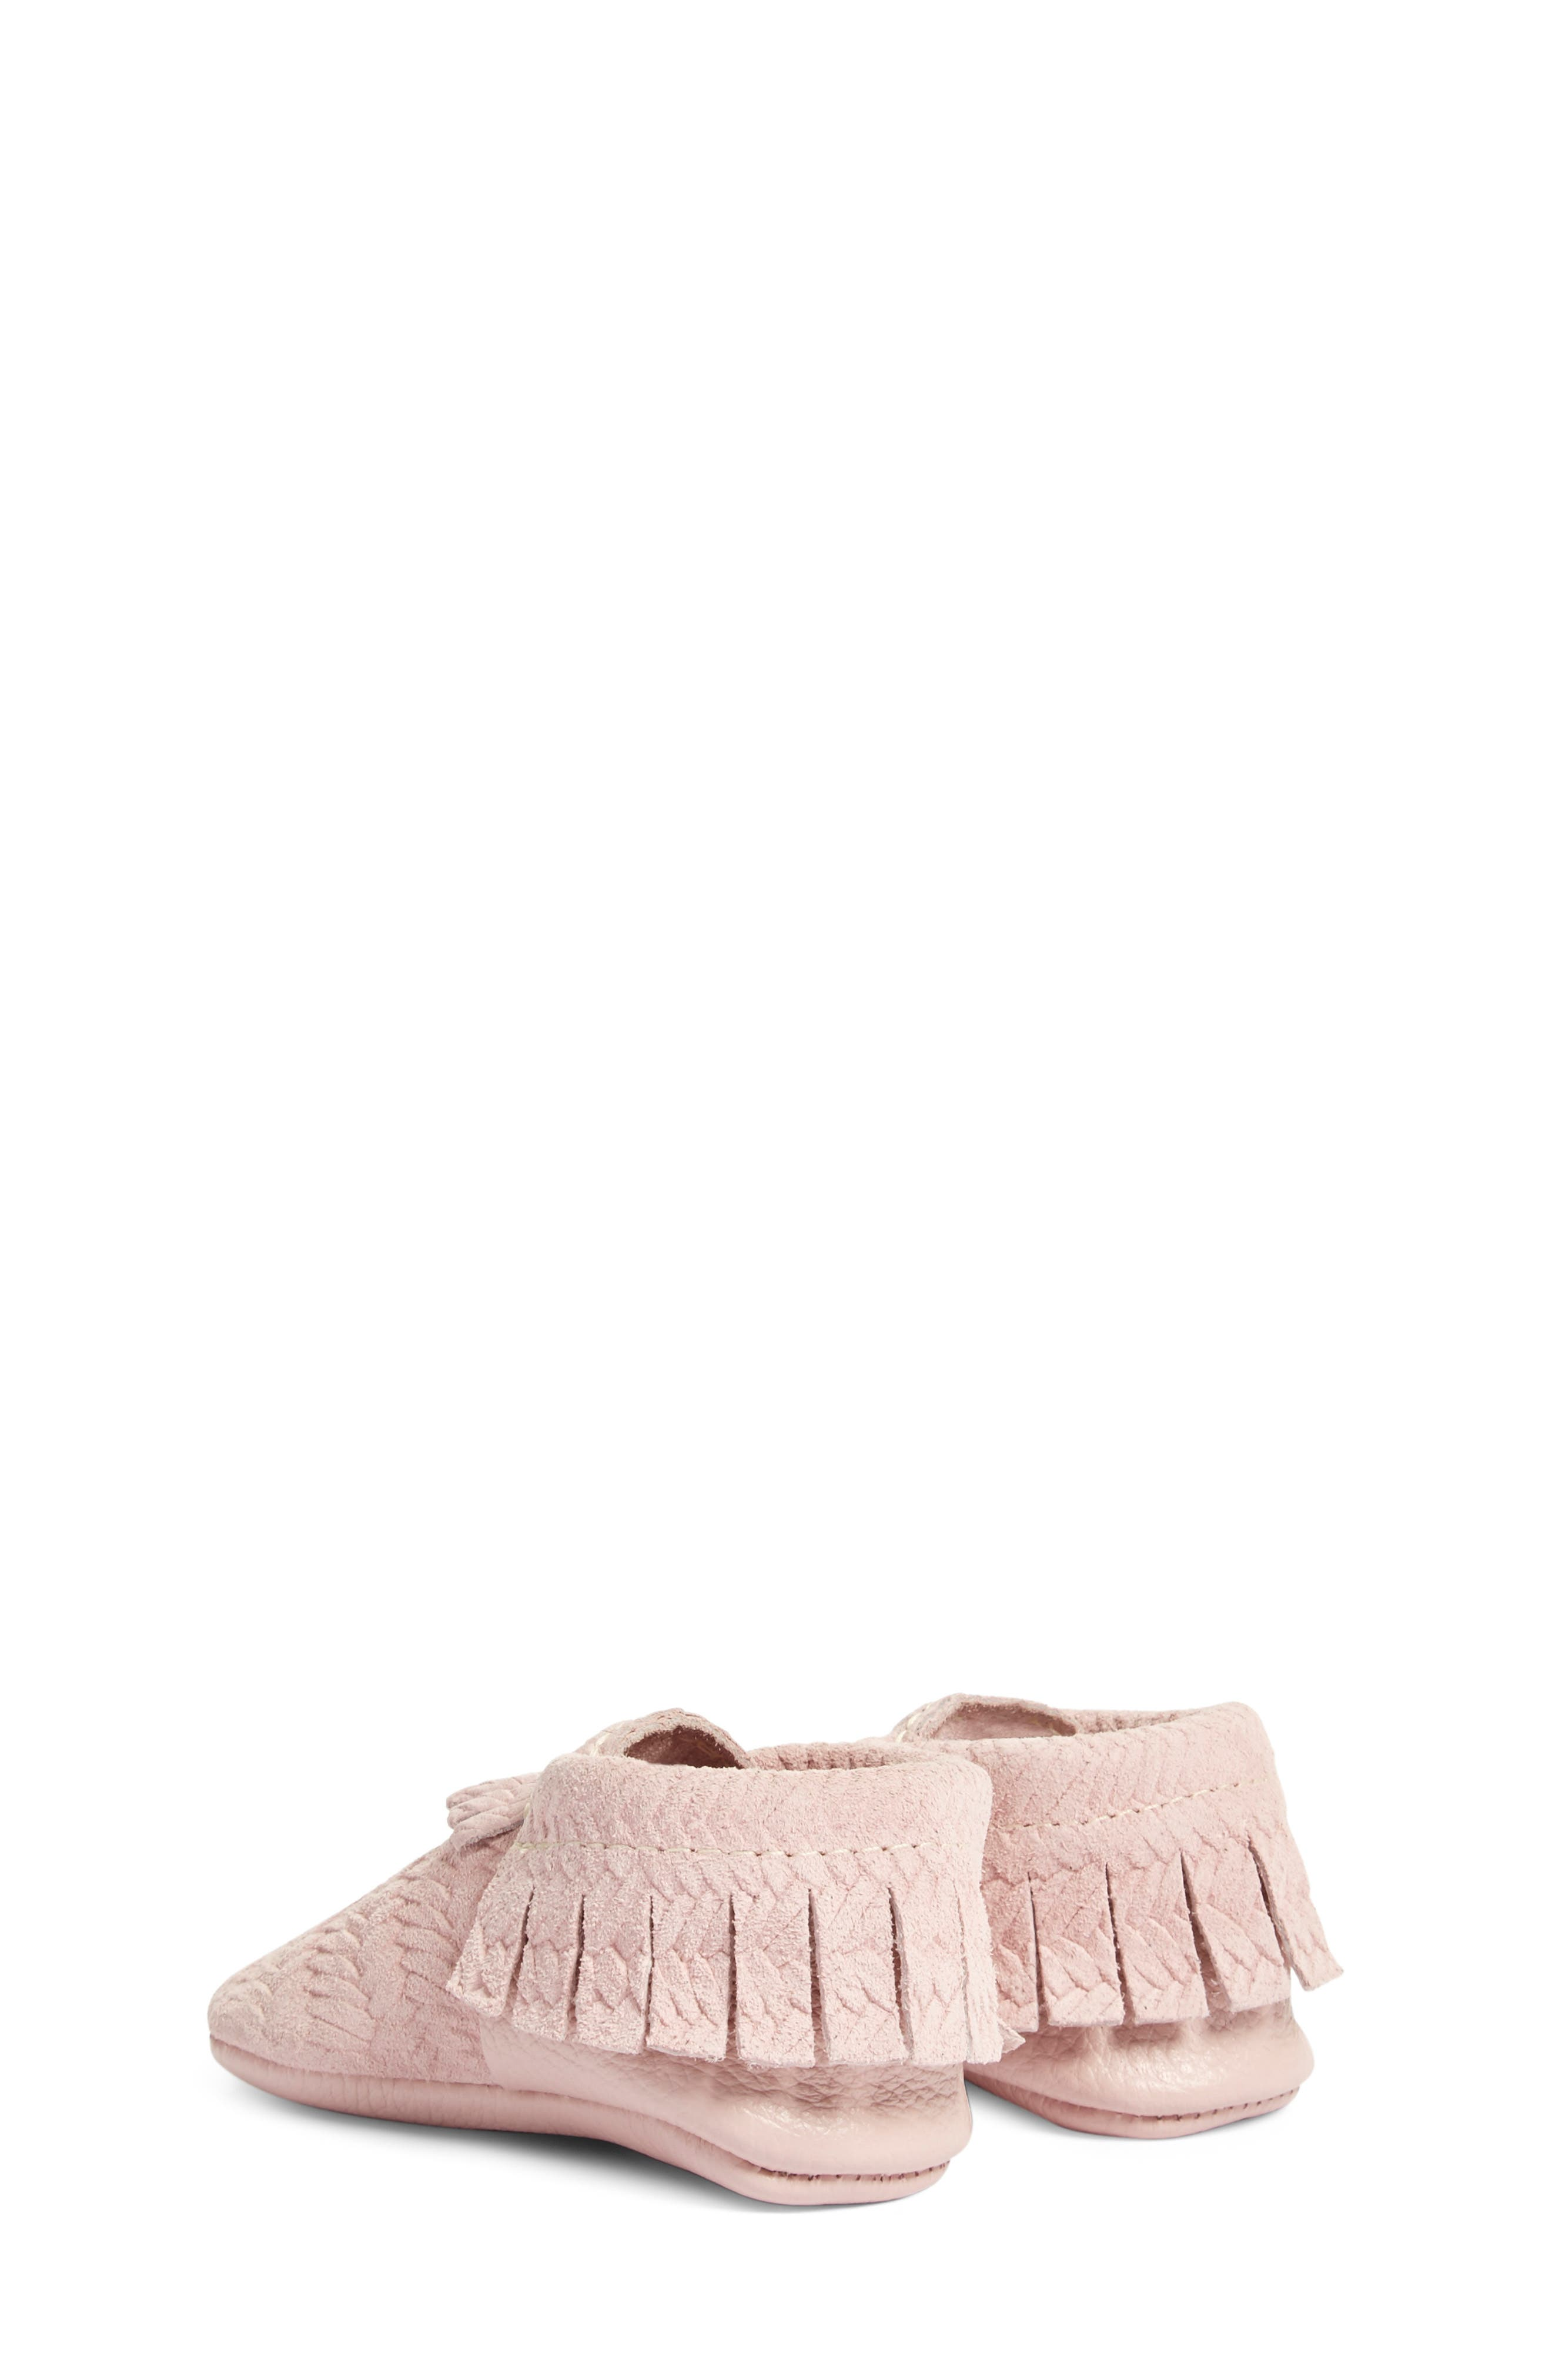 'Cardigan' Woven Leather Moccasin,                             Alternate thumbnail 5, color,                             680